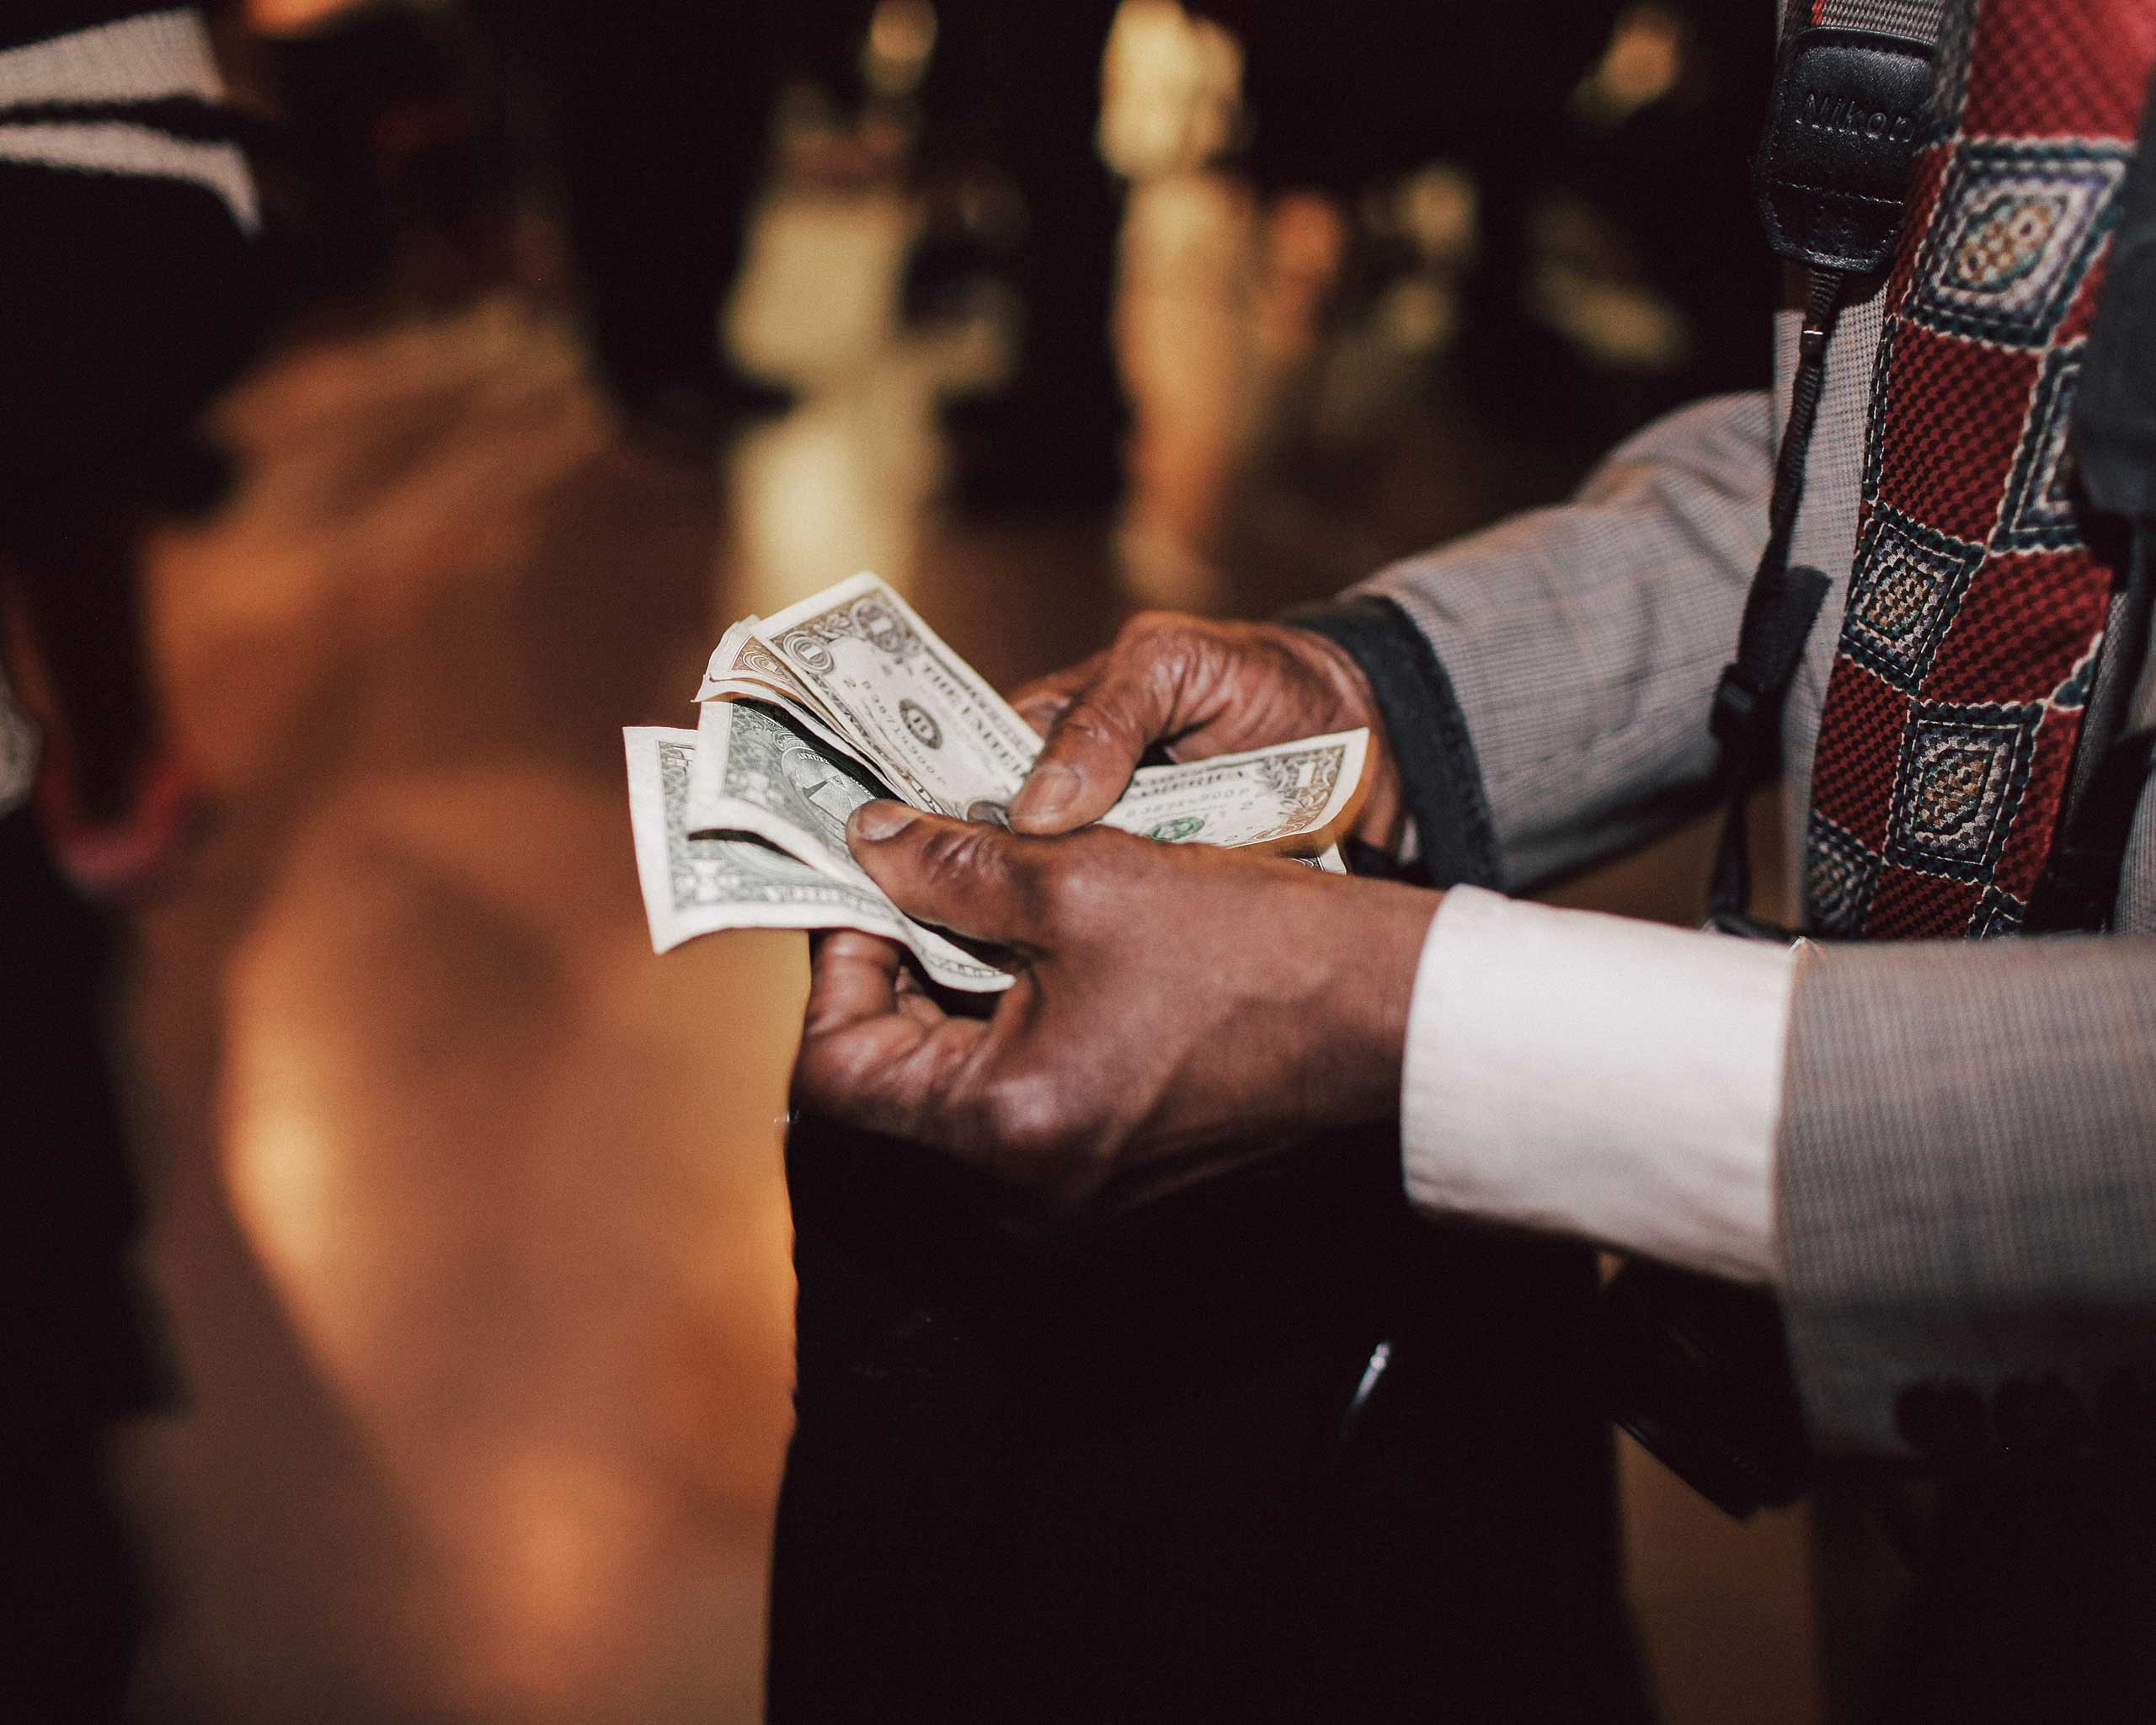 Alix Dejean counts his cash after sellings prints at a club in Harlem.